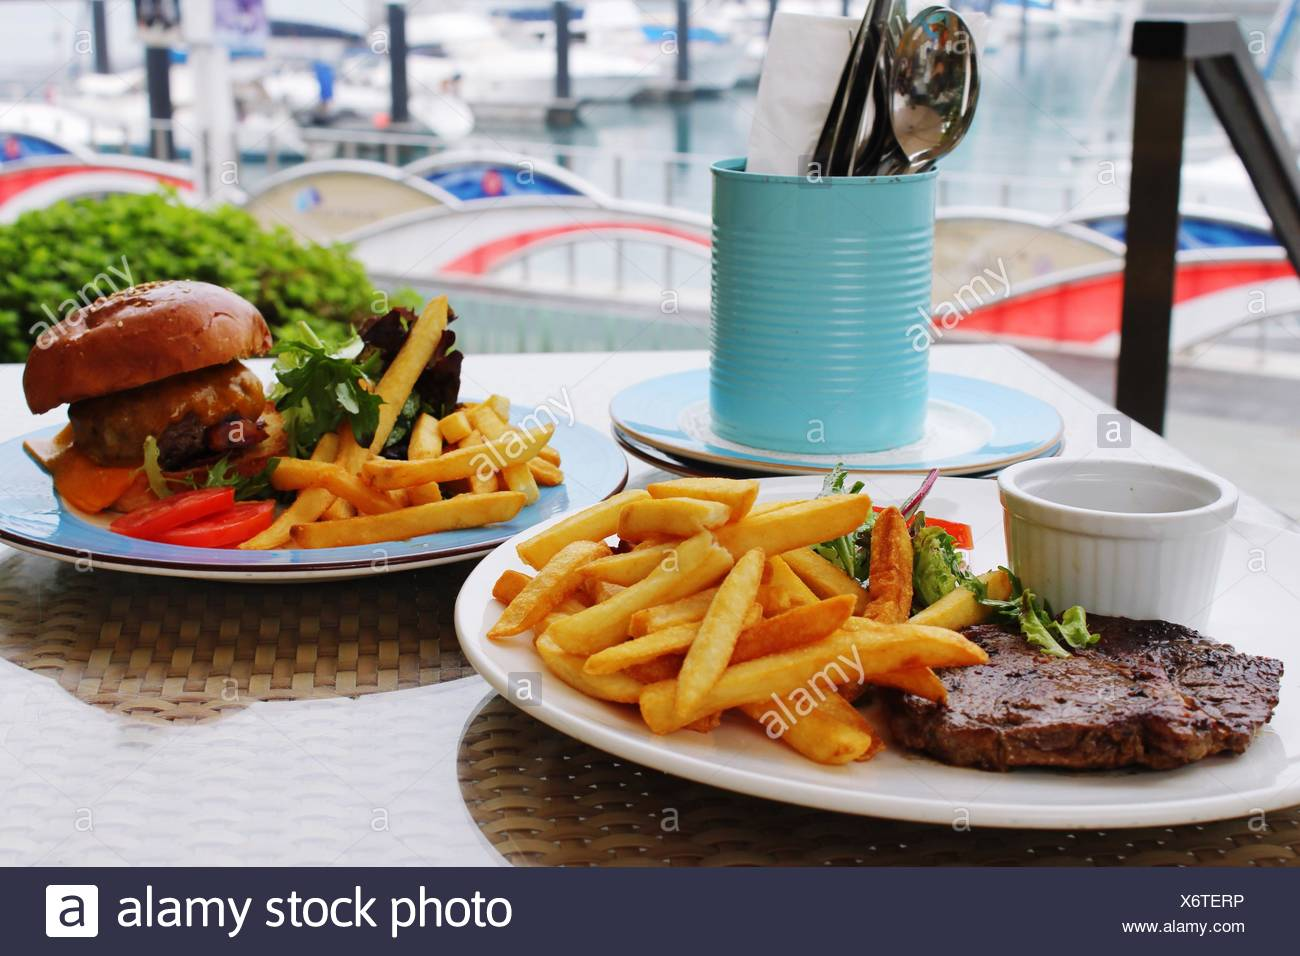 Close-Up Of Fries With Burger - Stock Image